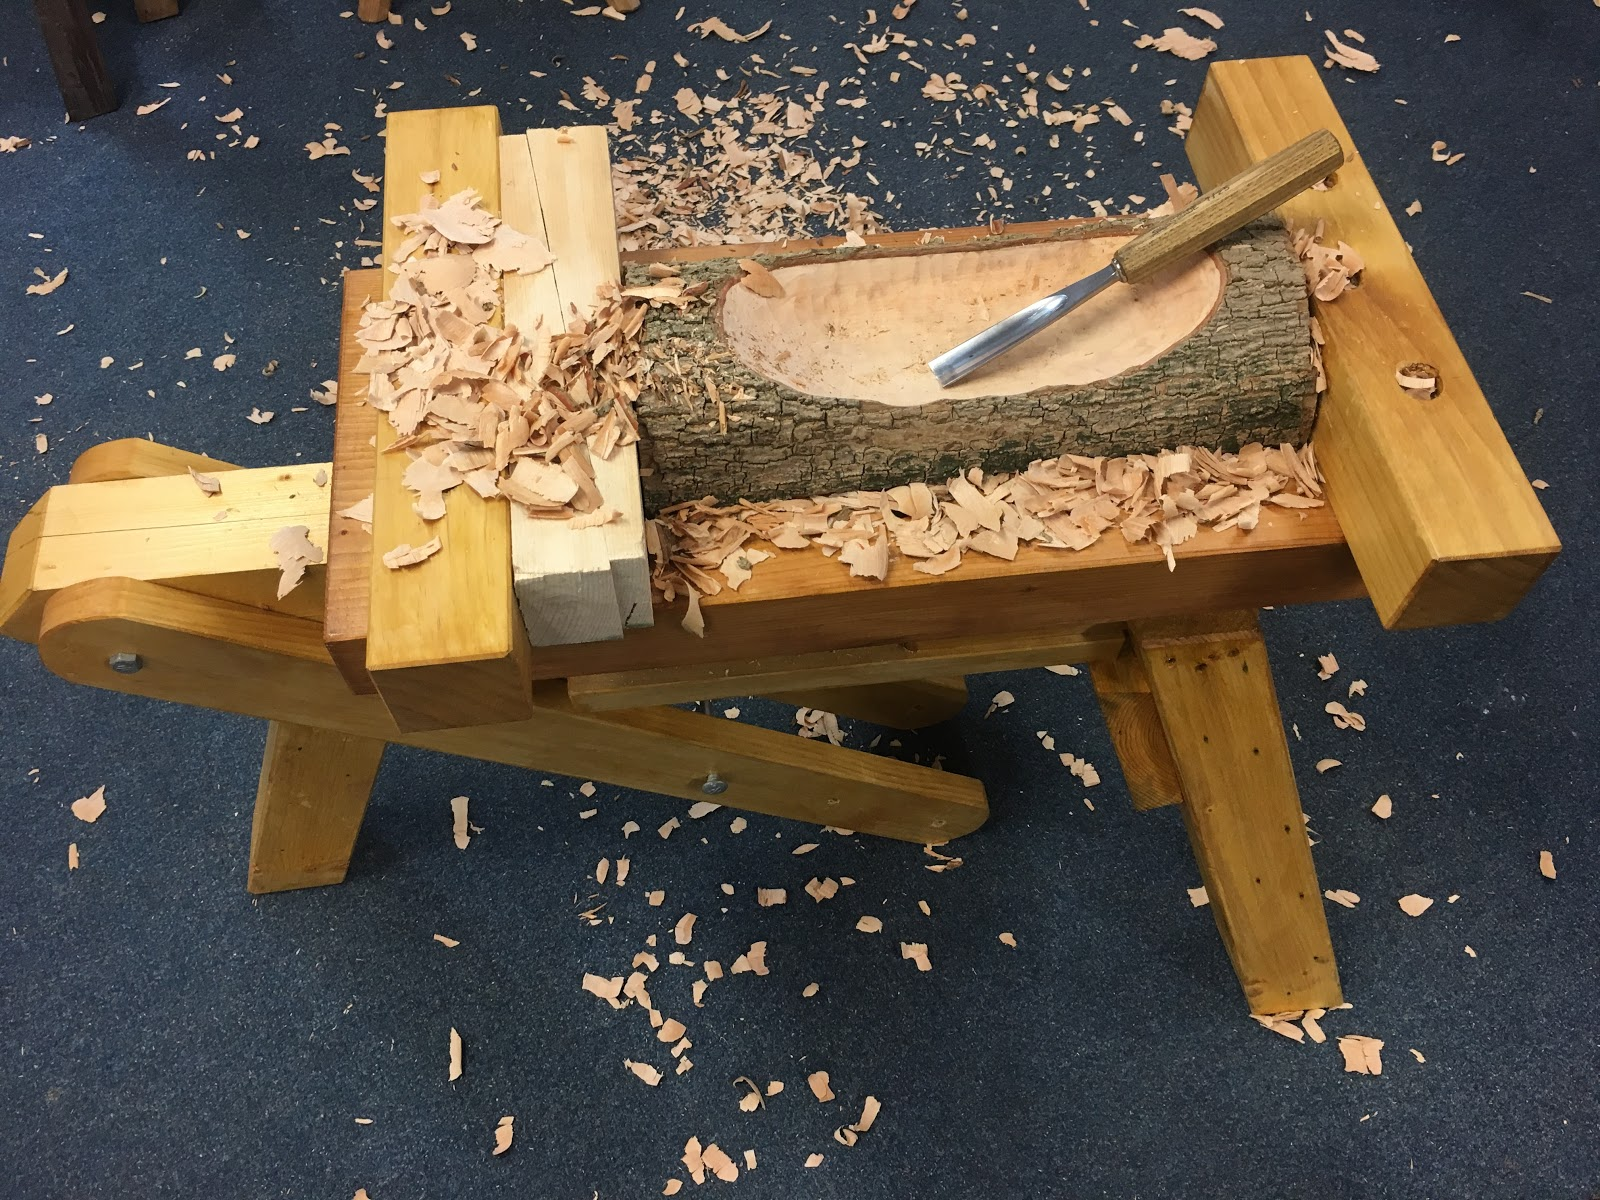 The joy of wood combining a shaving horse and bowl